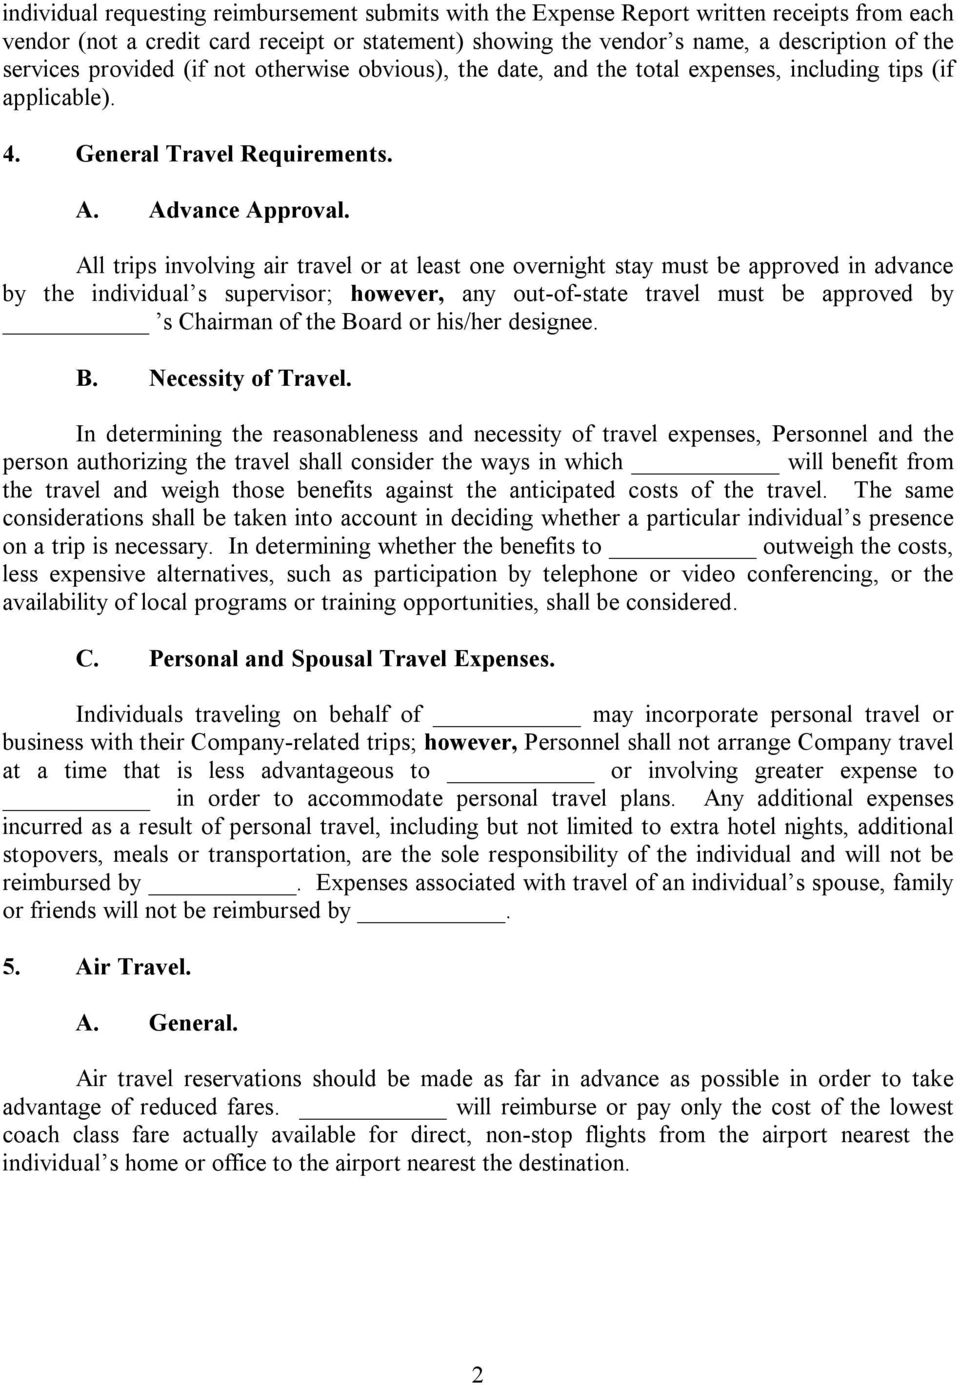 All trips involving air travel or at least one overnight stay must be approved in advance by the individual s supervisor; however, any out-of-state travel must be approved by s Chairman of the Board